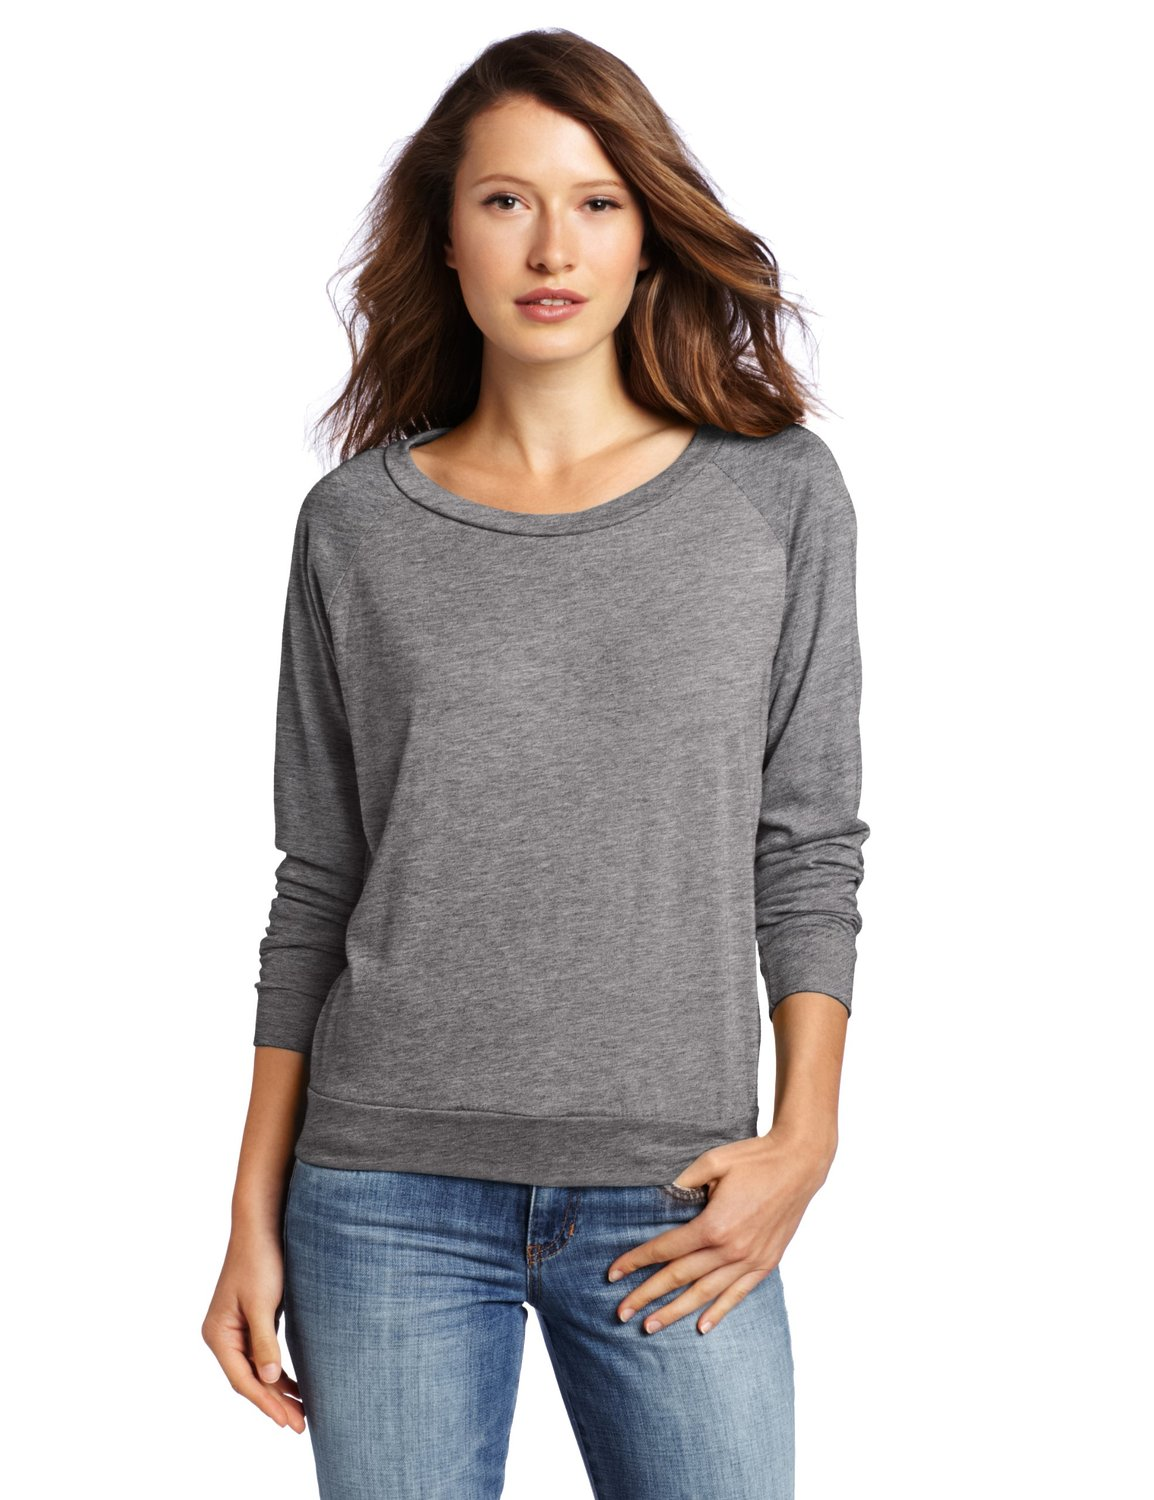 Amazon.com: Alternative Women's Slouchy Pullover: Clothing